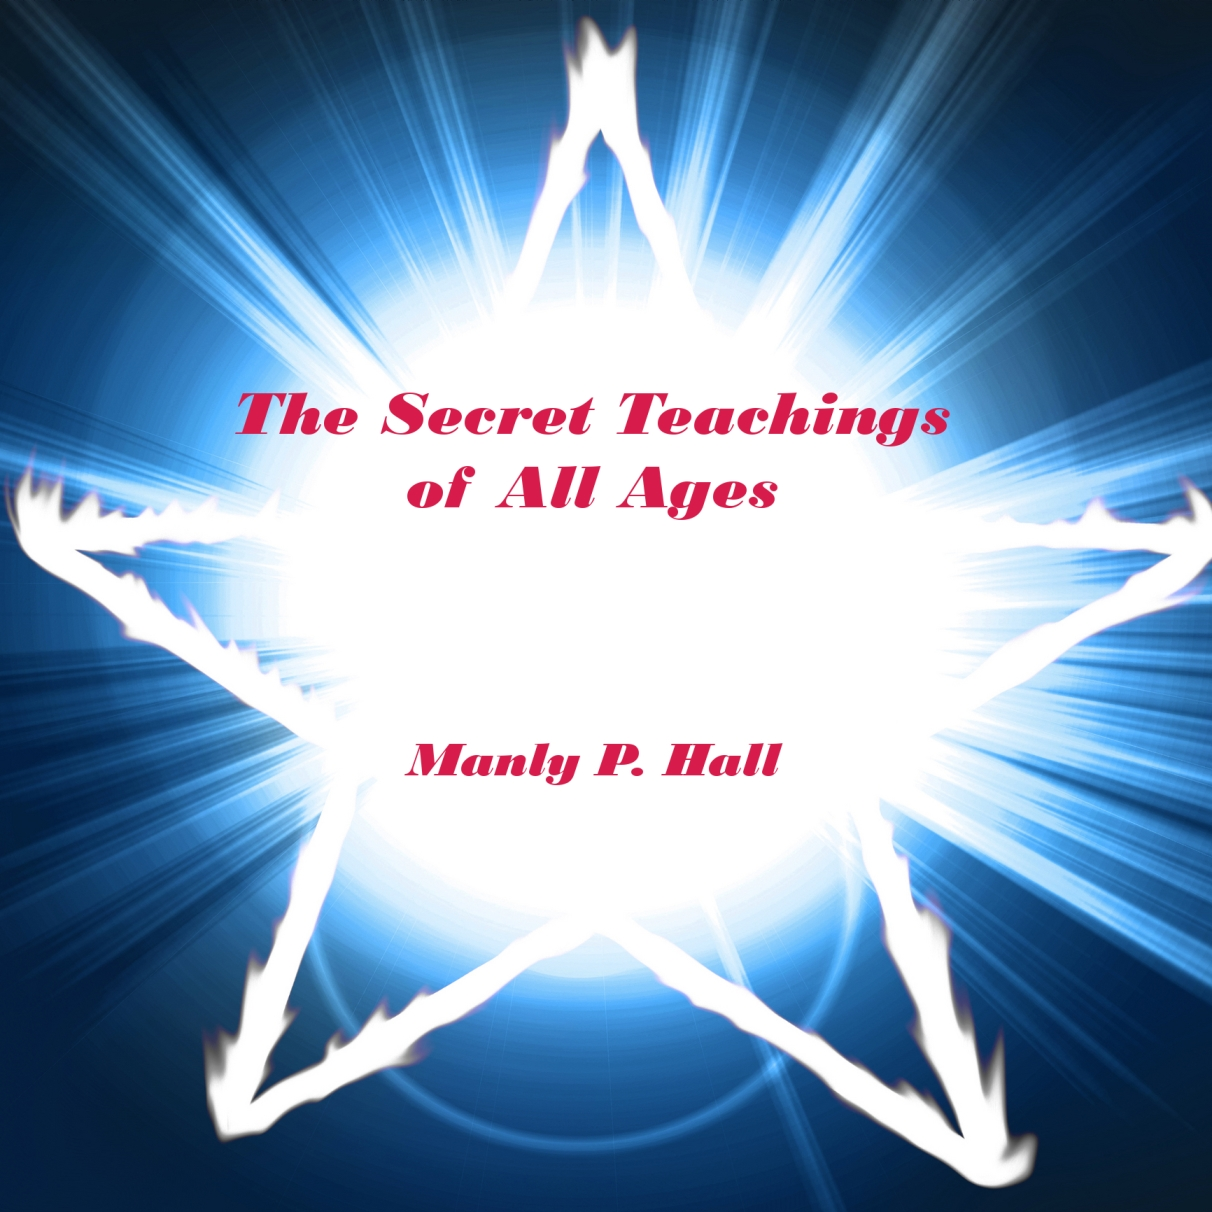 The Secret Teachings of All Ages: Illustrated